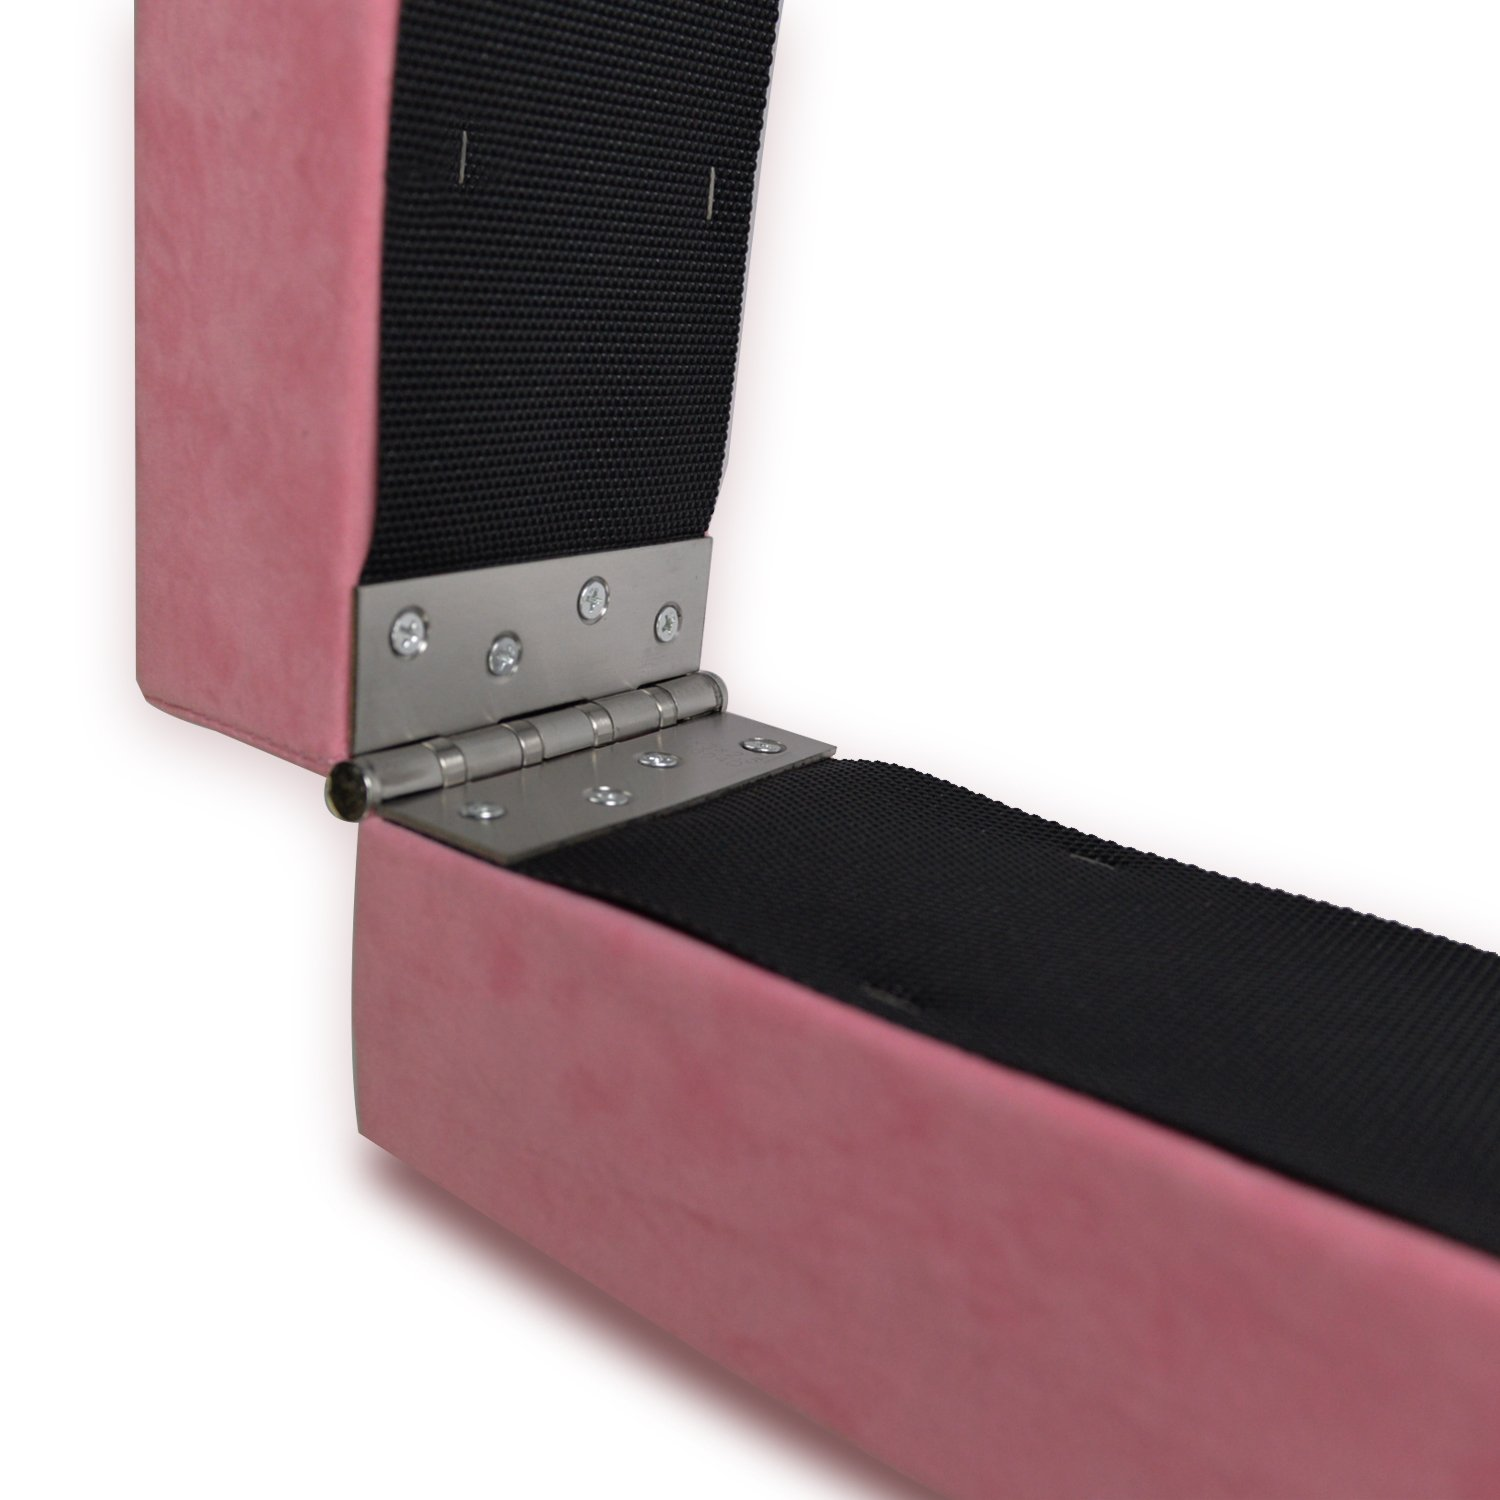 HYD-PARTS Gymnastic 7' Balance Beam and 4'x10' Gym mats (Pink Beam+4 by 10 Pink&Black mat, 7') by HYD-PARTS (Image #4)